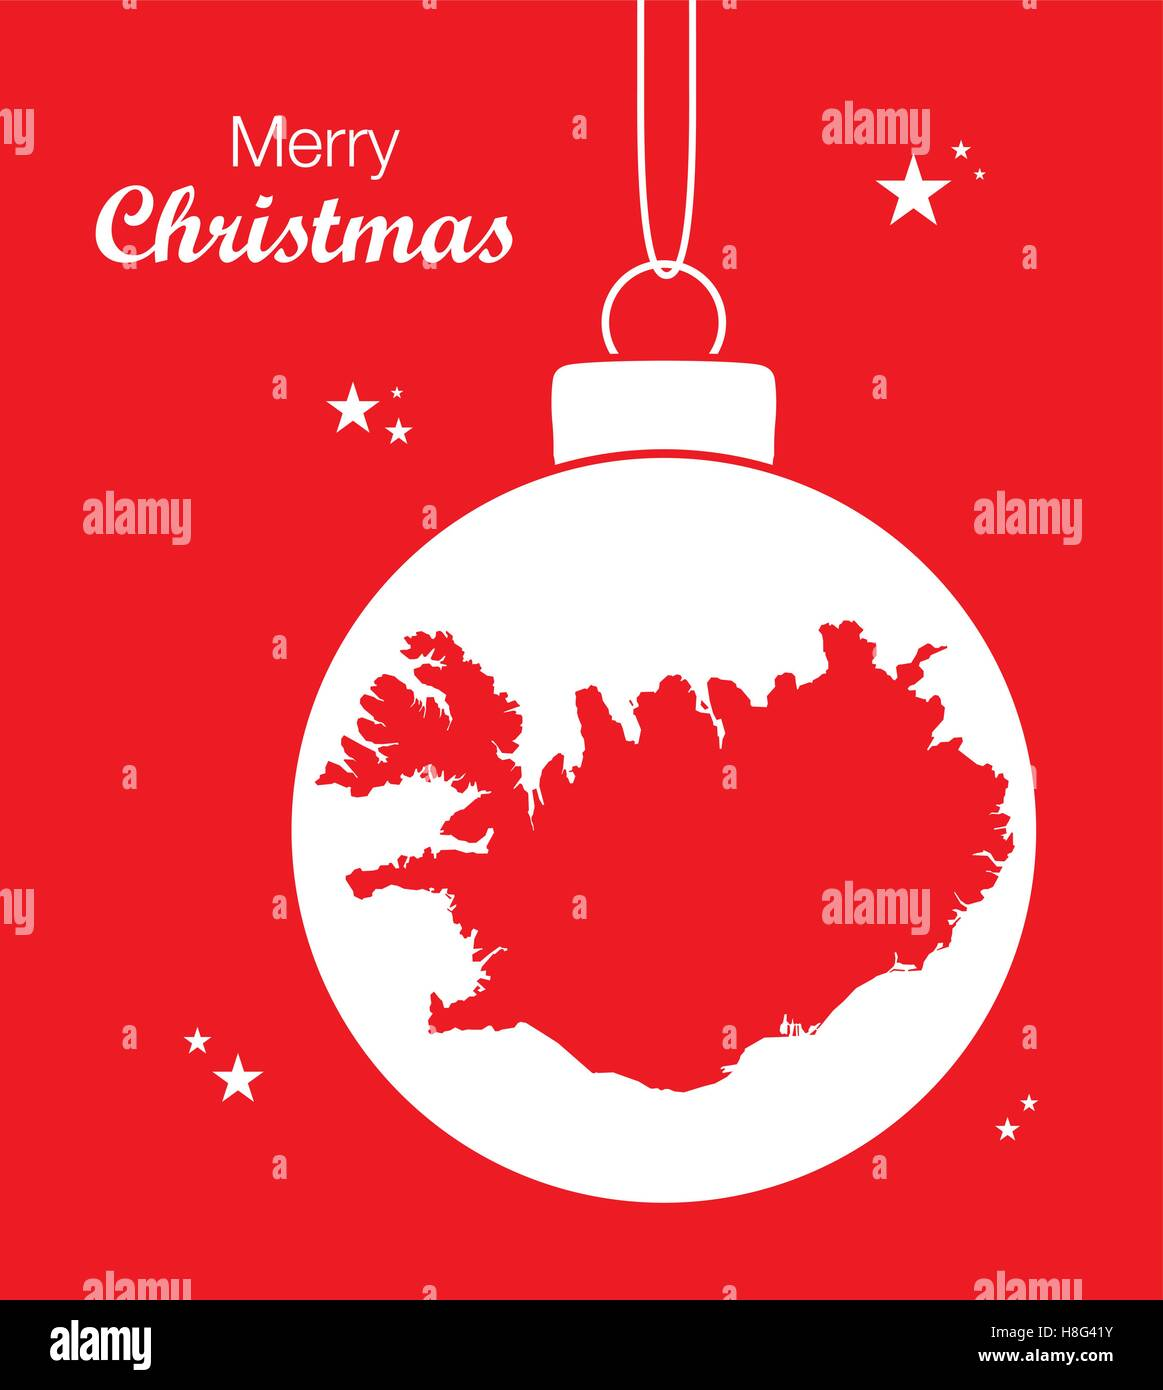 merry christmas map iceland stock vector - Merry Christmas In Icelandic